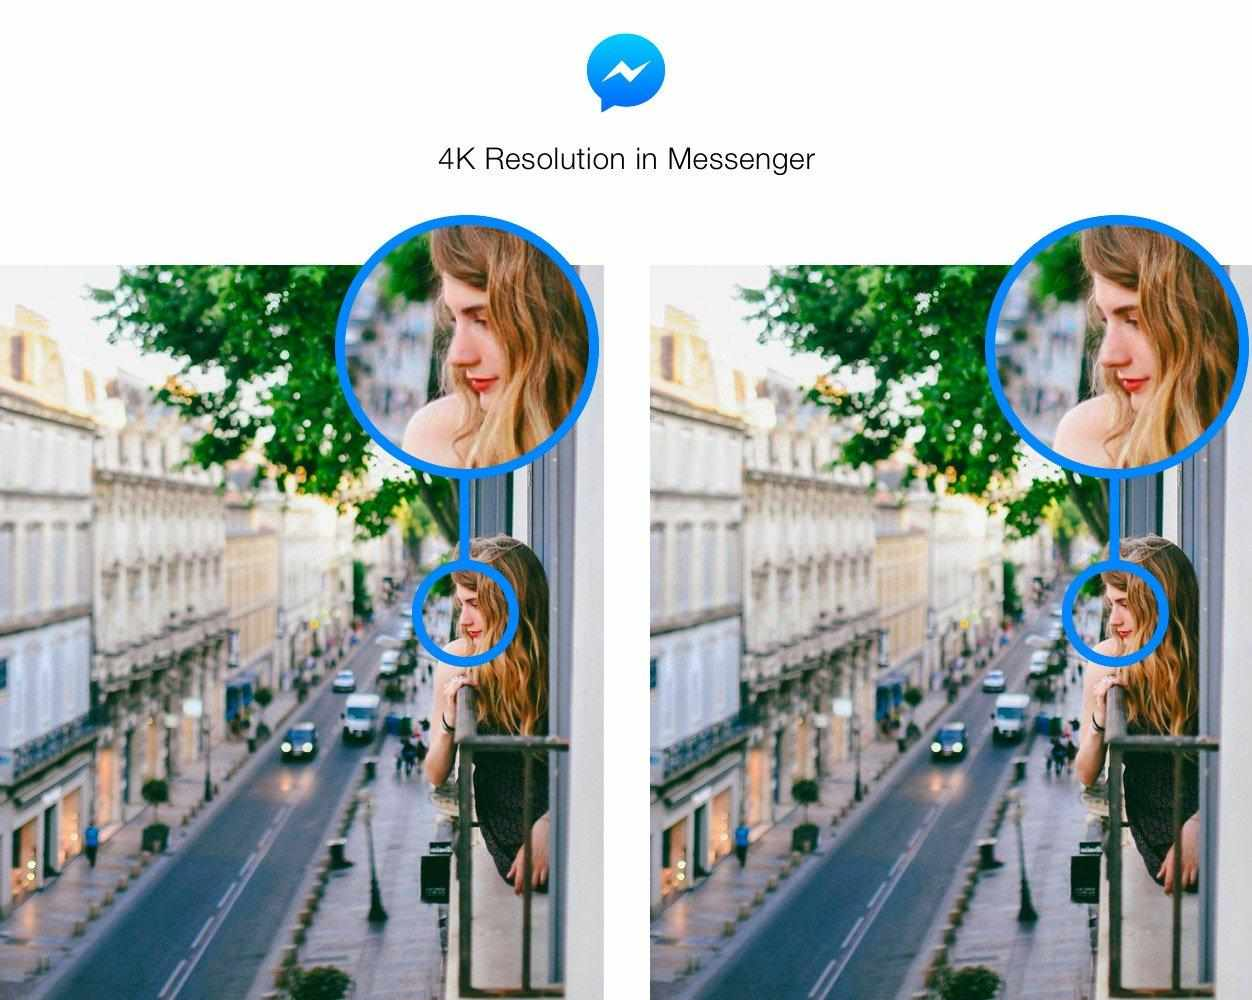 Foto in 4k su Facebook Messenger